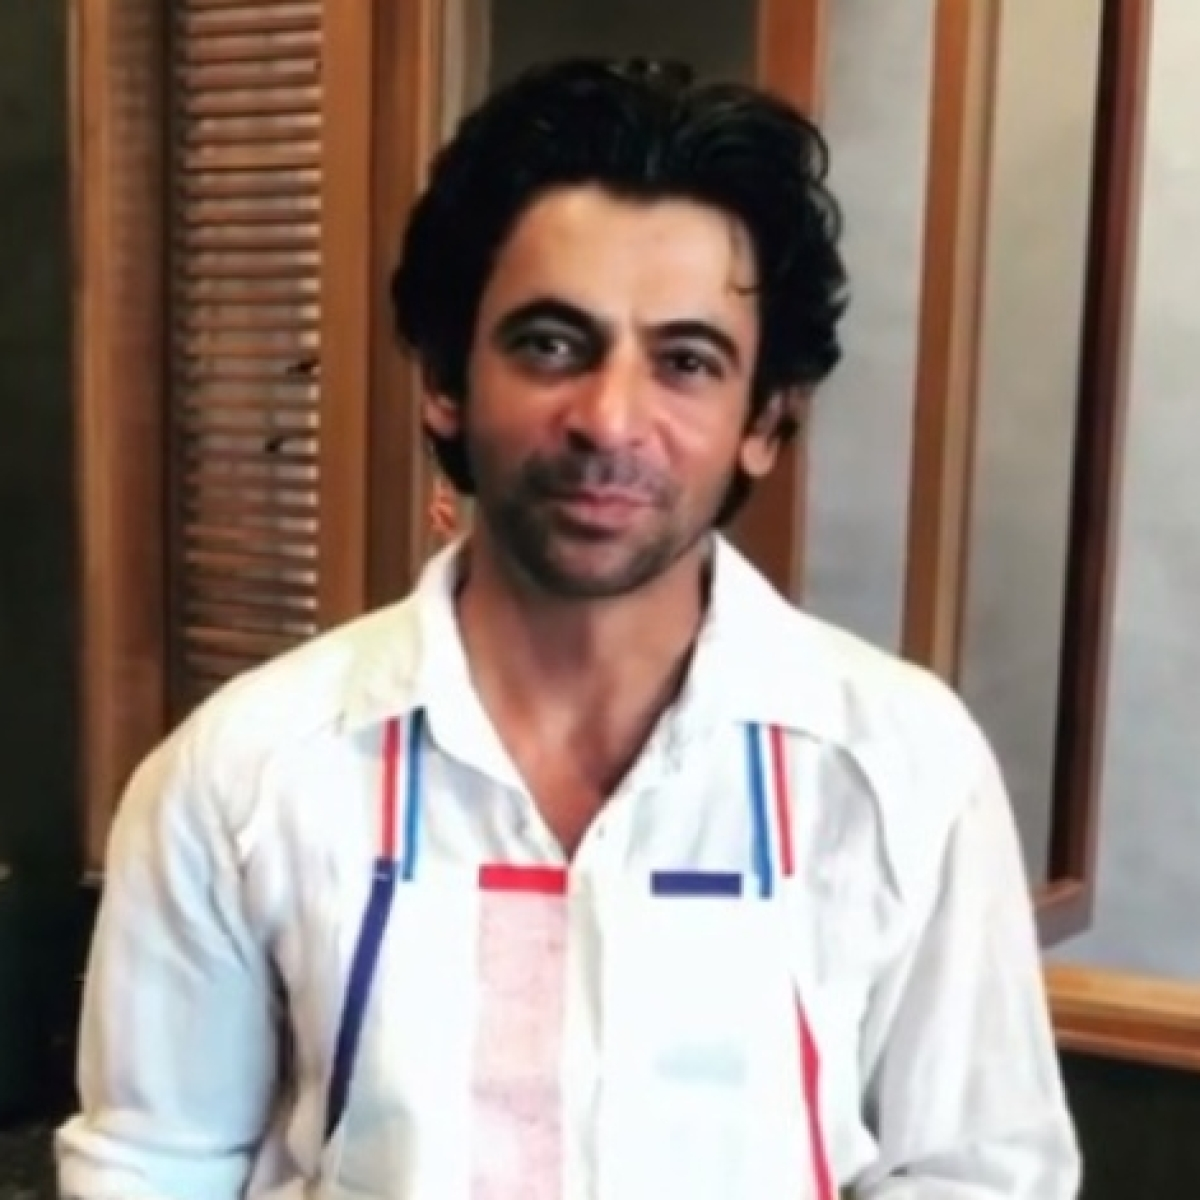 World No-Tobacco Day 2020: Sunil Grover shares 'cigarette recipe' to deliver anti-cancer message